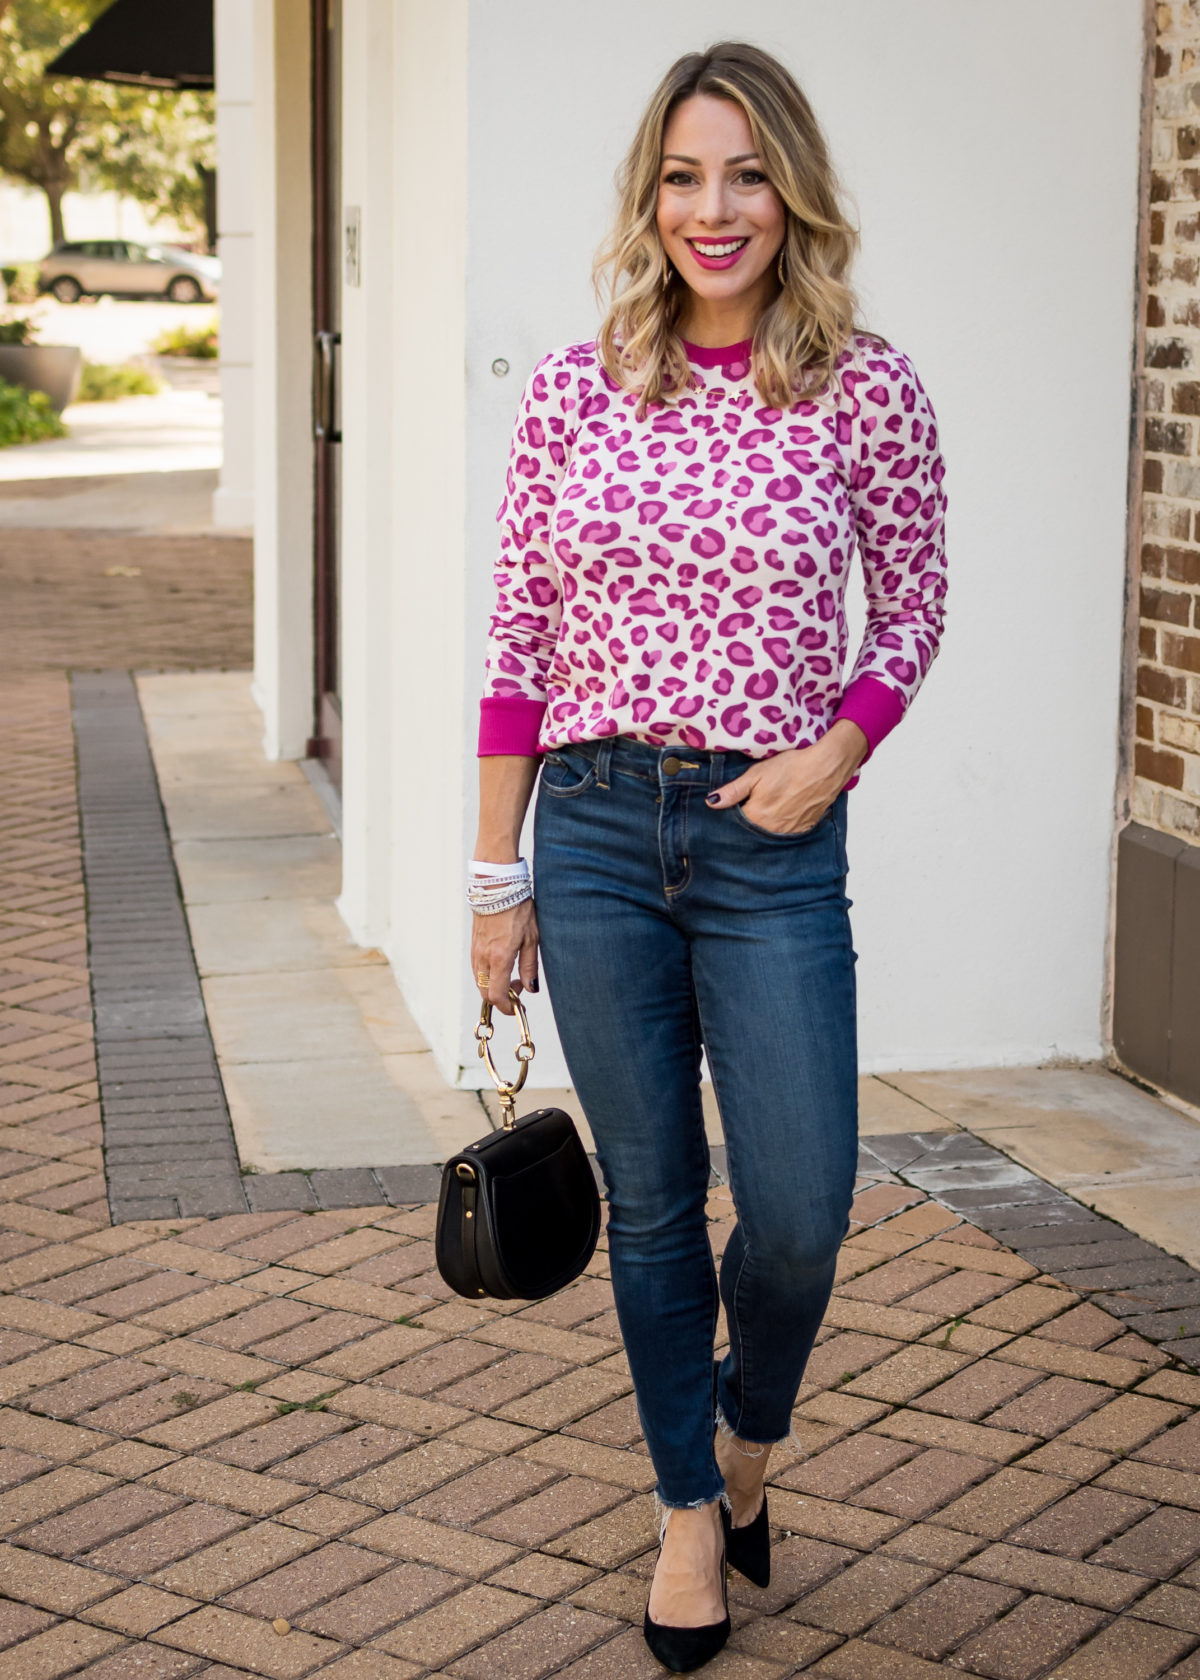 Gibson Fashion, Pink Leopard Sweater, Daily Ritual Jeans, Heels, Ring Clutch